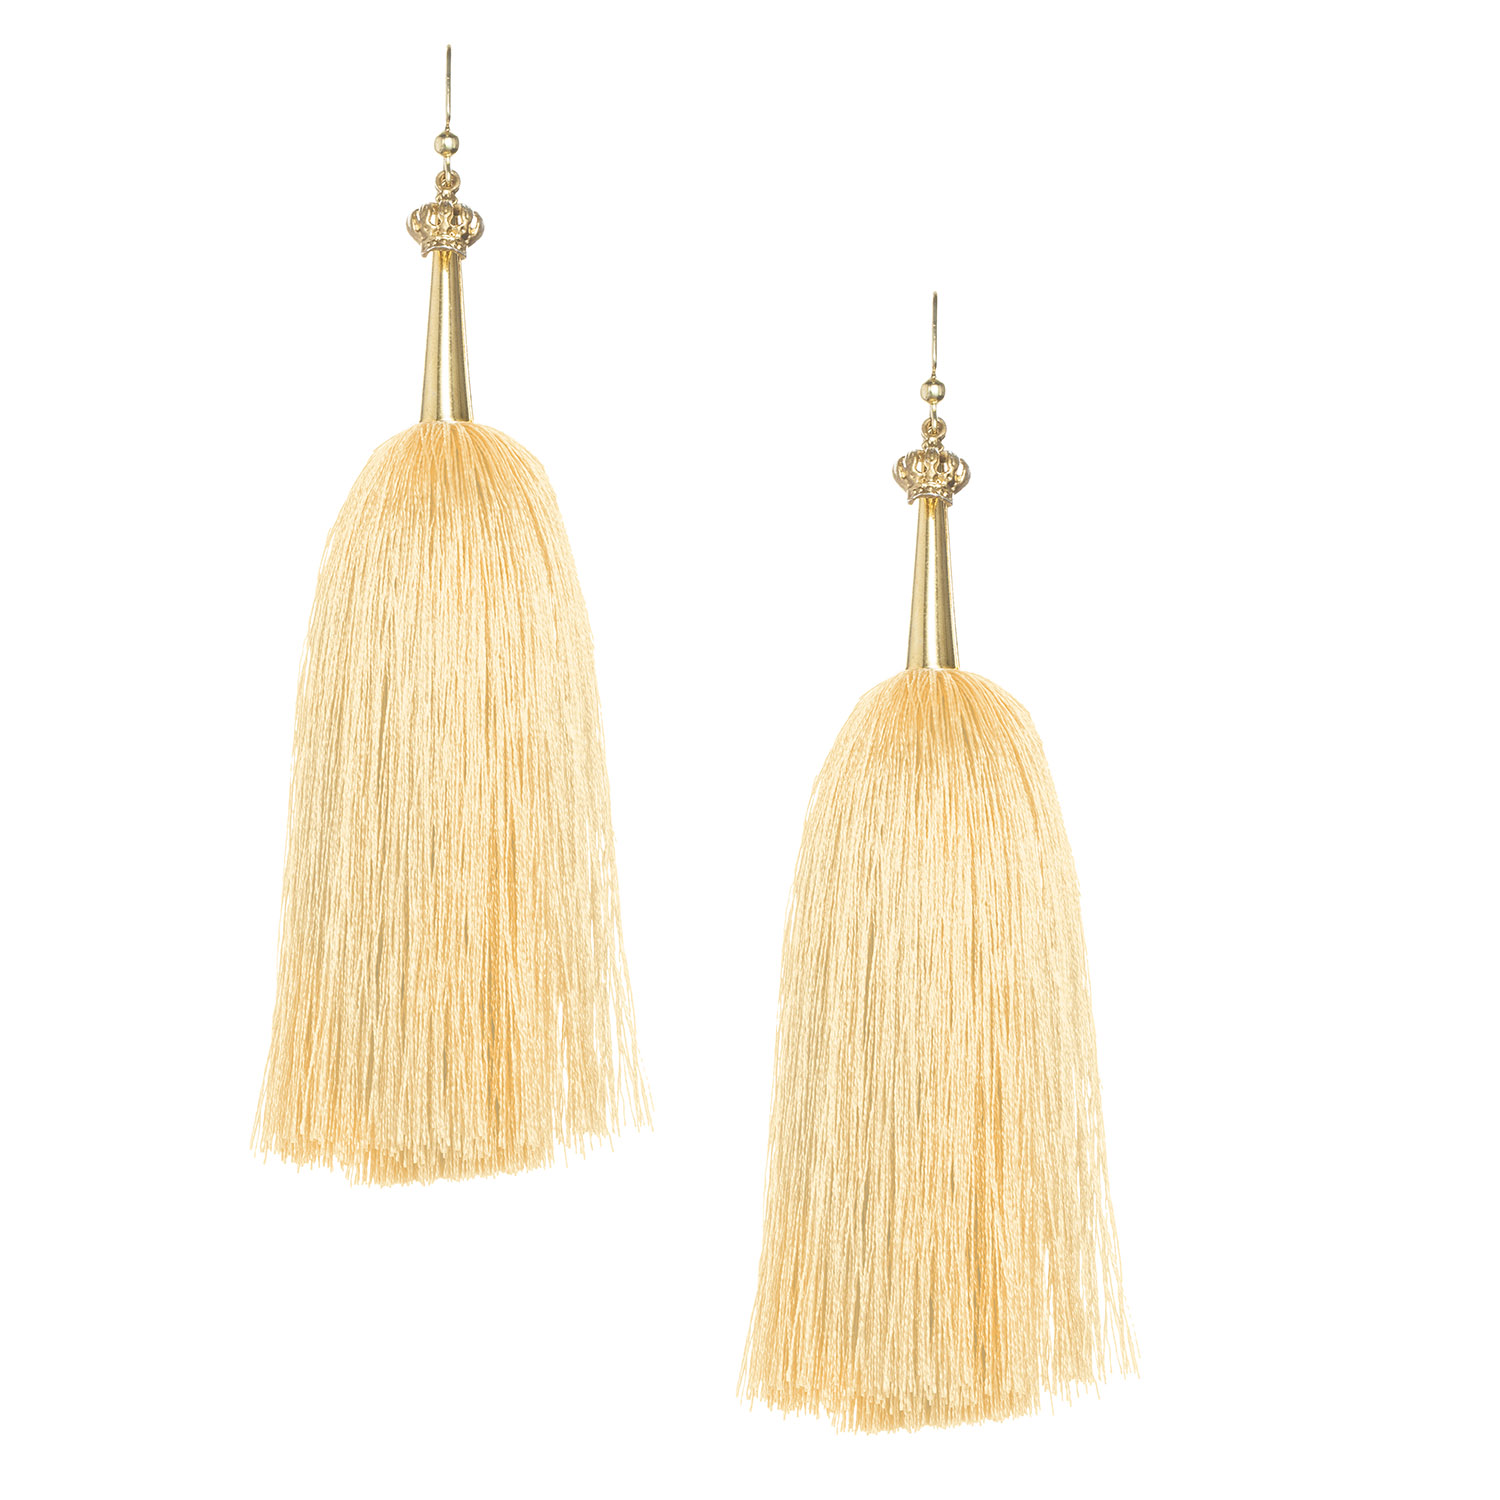 Soft Yellow Feather Silk Tassel Earrings with Gold Cap